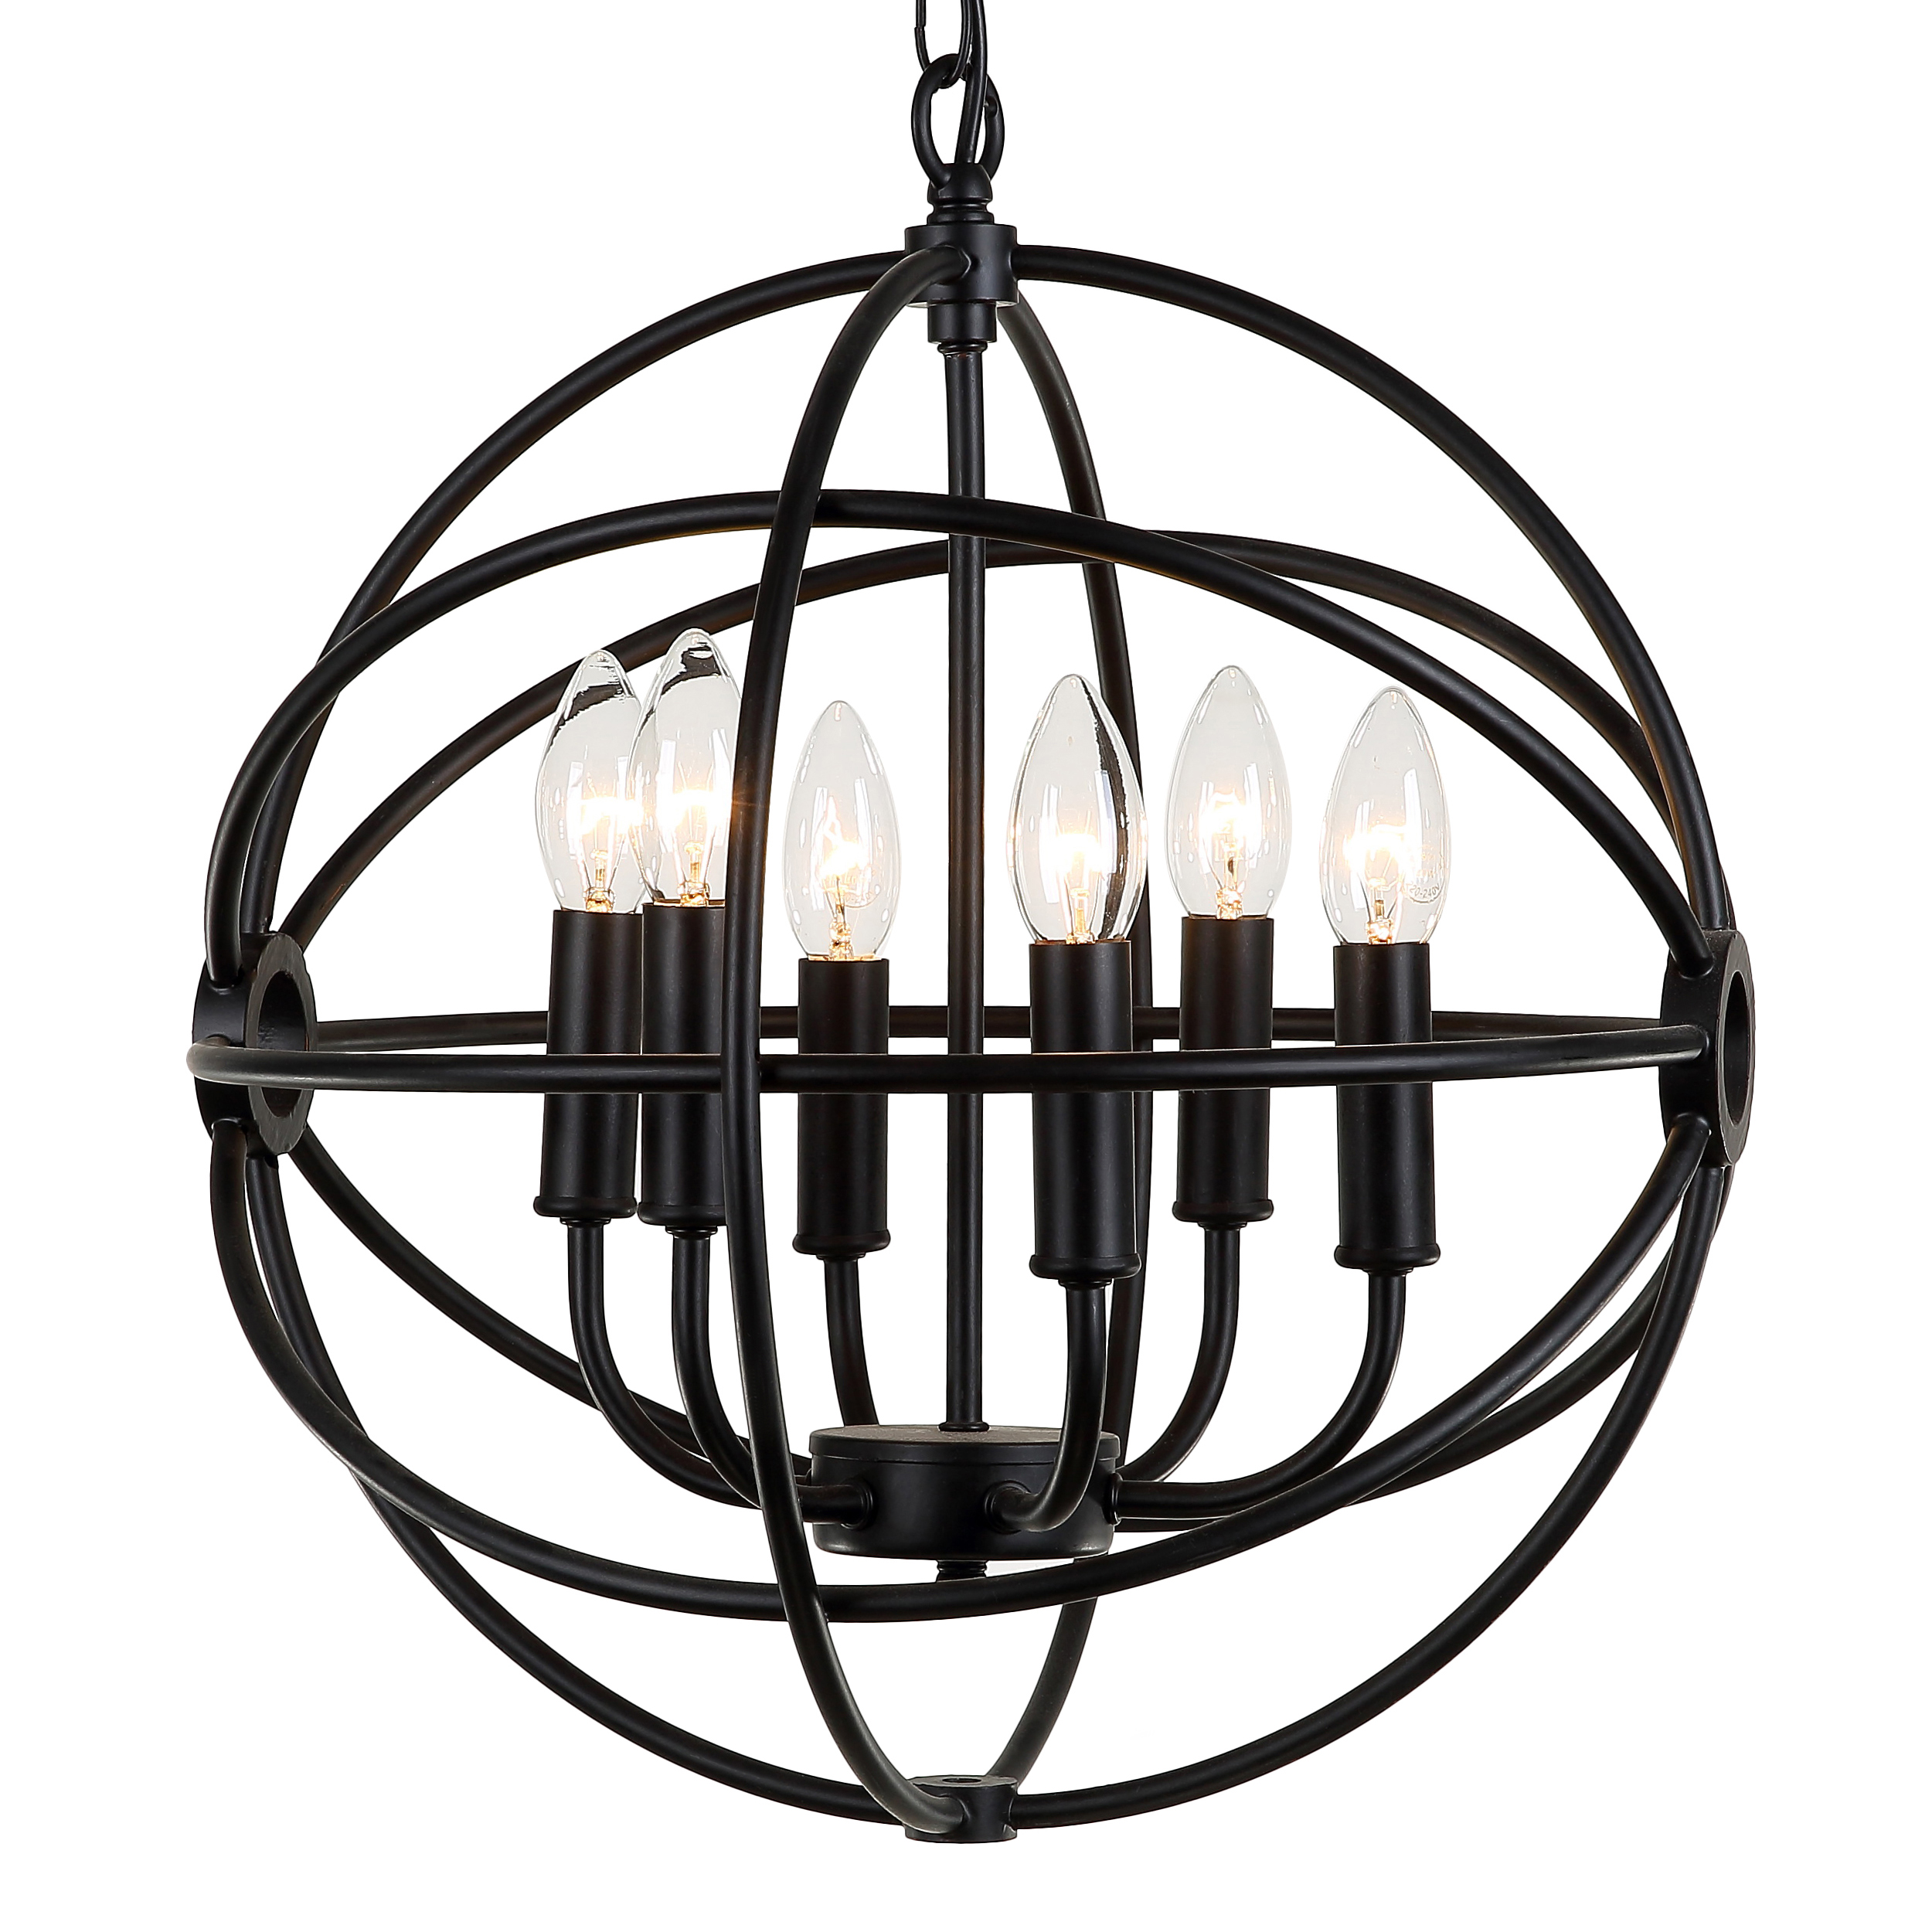 Non Hardwired Wall Lamps : Non Hardwired Chandelier - Candle Chandelier Non Electric Ceiling Lighting Find Ceiling Light ...